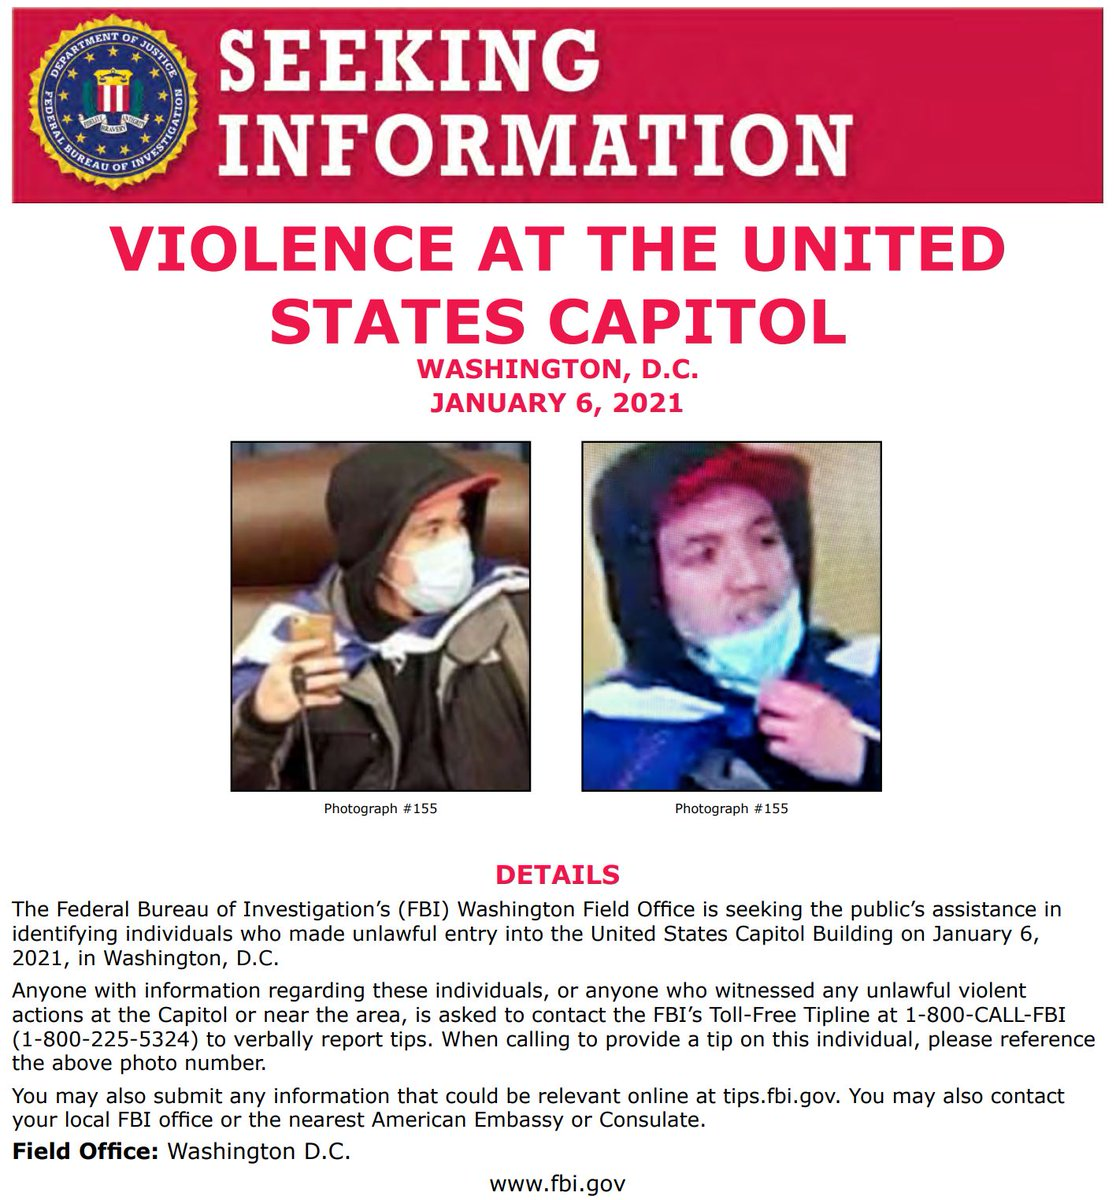 NEW: #FBIWFO is seeking the public's assistance in identifying individuals who made unlawful entry into the US Capitol on January 6th. If you have info, call 1800CALLFBI or submit to tips.fbi.gov. fbi.gov/wanted/seeking…